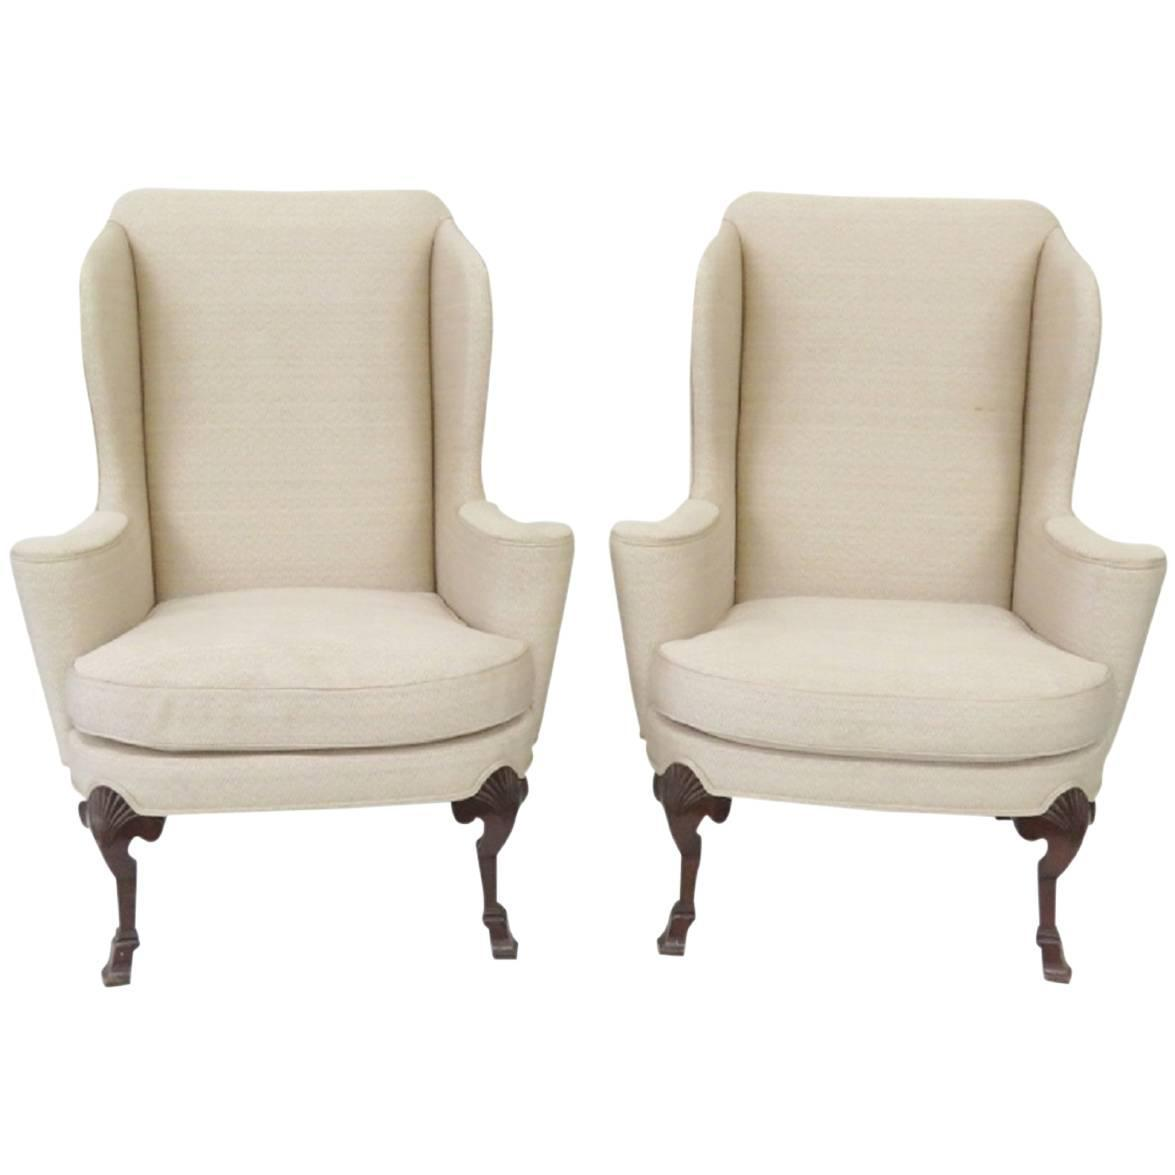 Pair of Baker Wing Chairs For Sale at 1stdibs